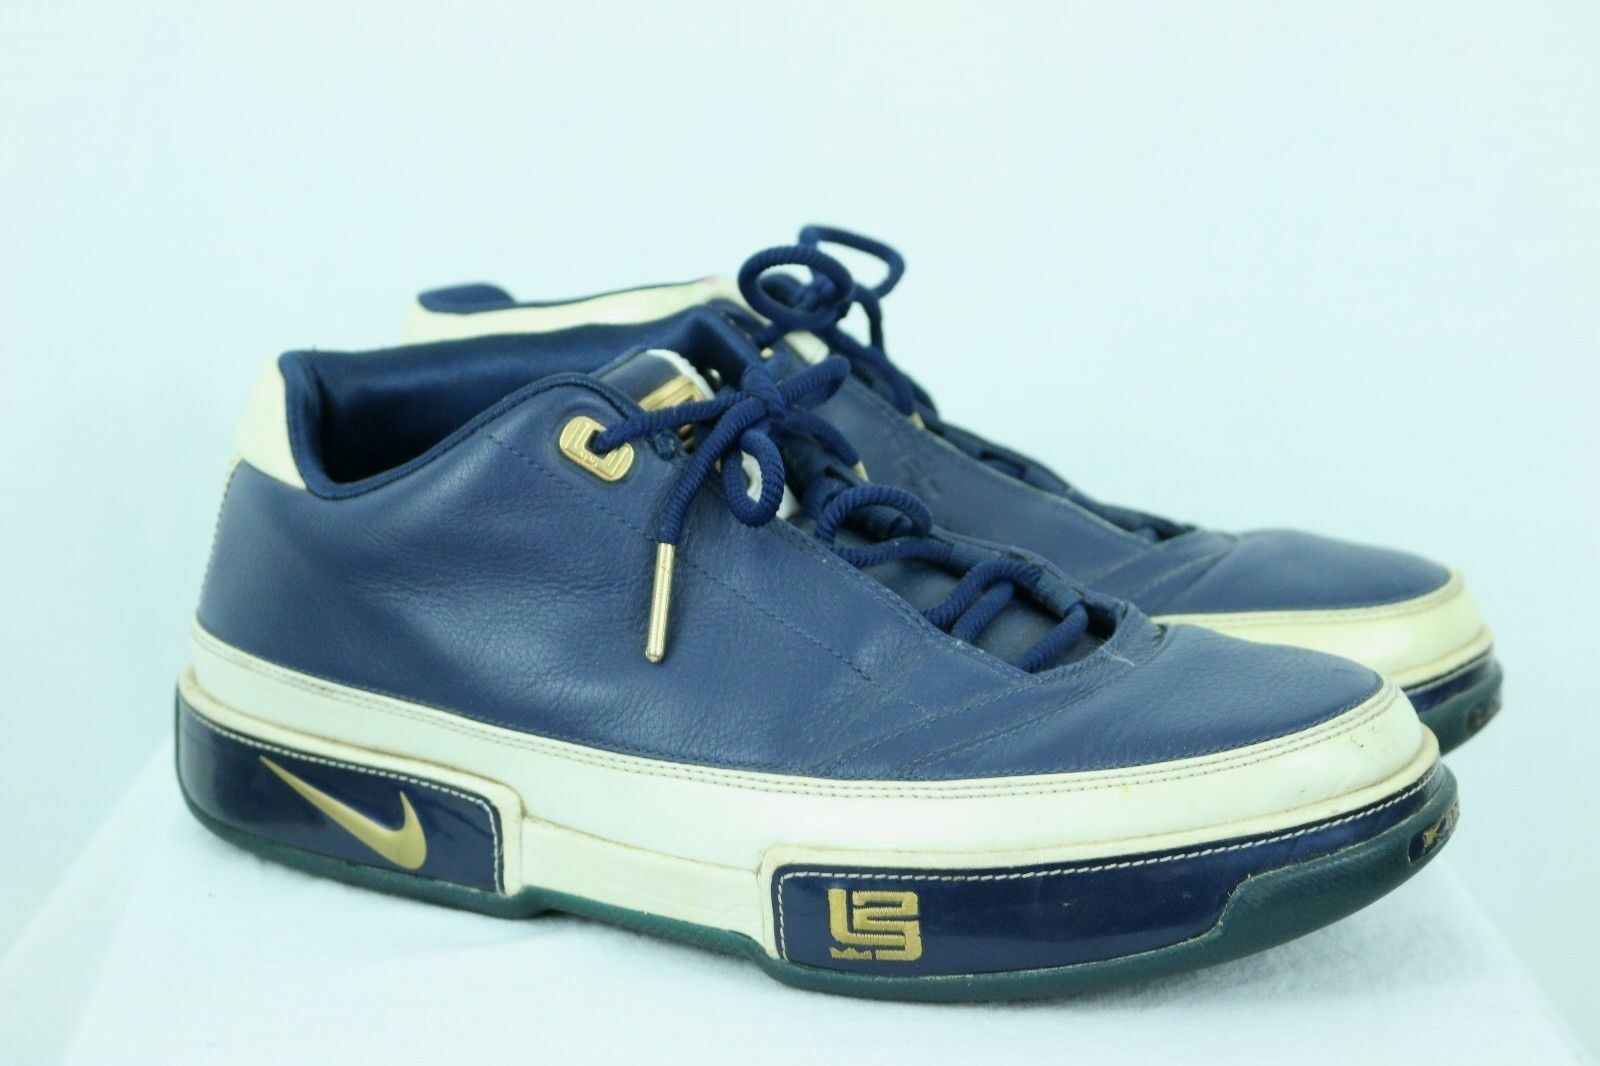 Nike  Uomo Zoom Lebron WEISS Niedrig ST Navy / WEISS Lebron / Gold Größe 10 King James Euro 44 45ccb7